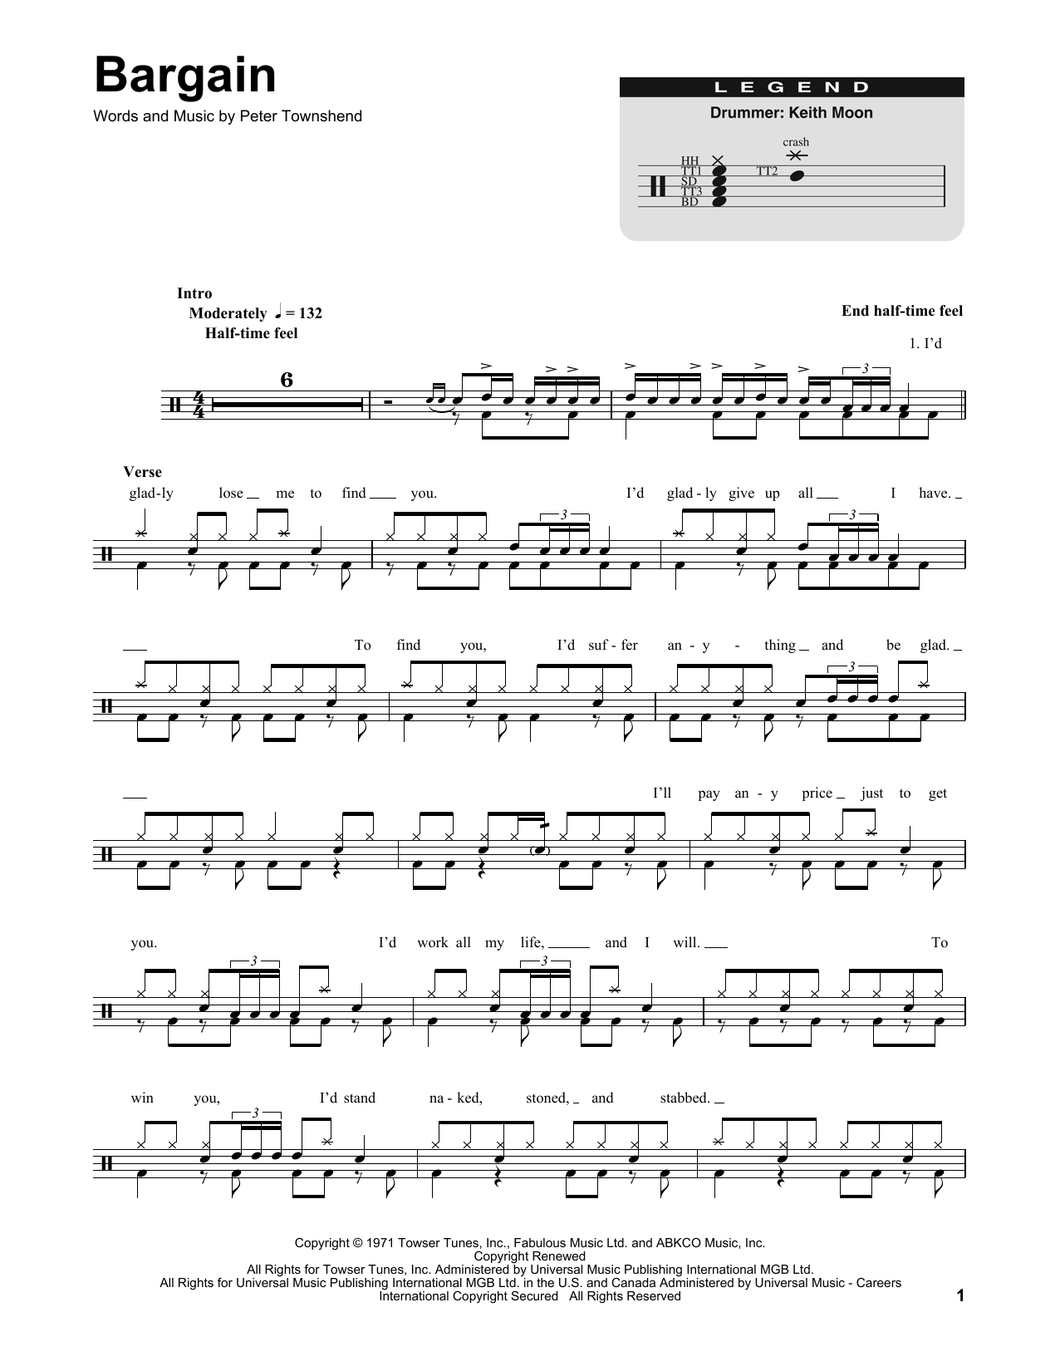 Bargain - The Who - Full Drum Transcription / Drum Sheet Music - SheetMusicDirect DT